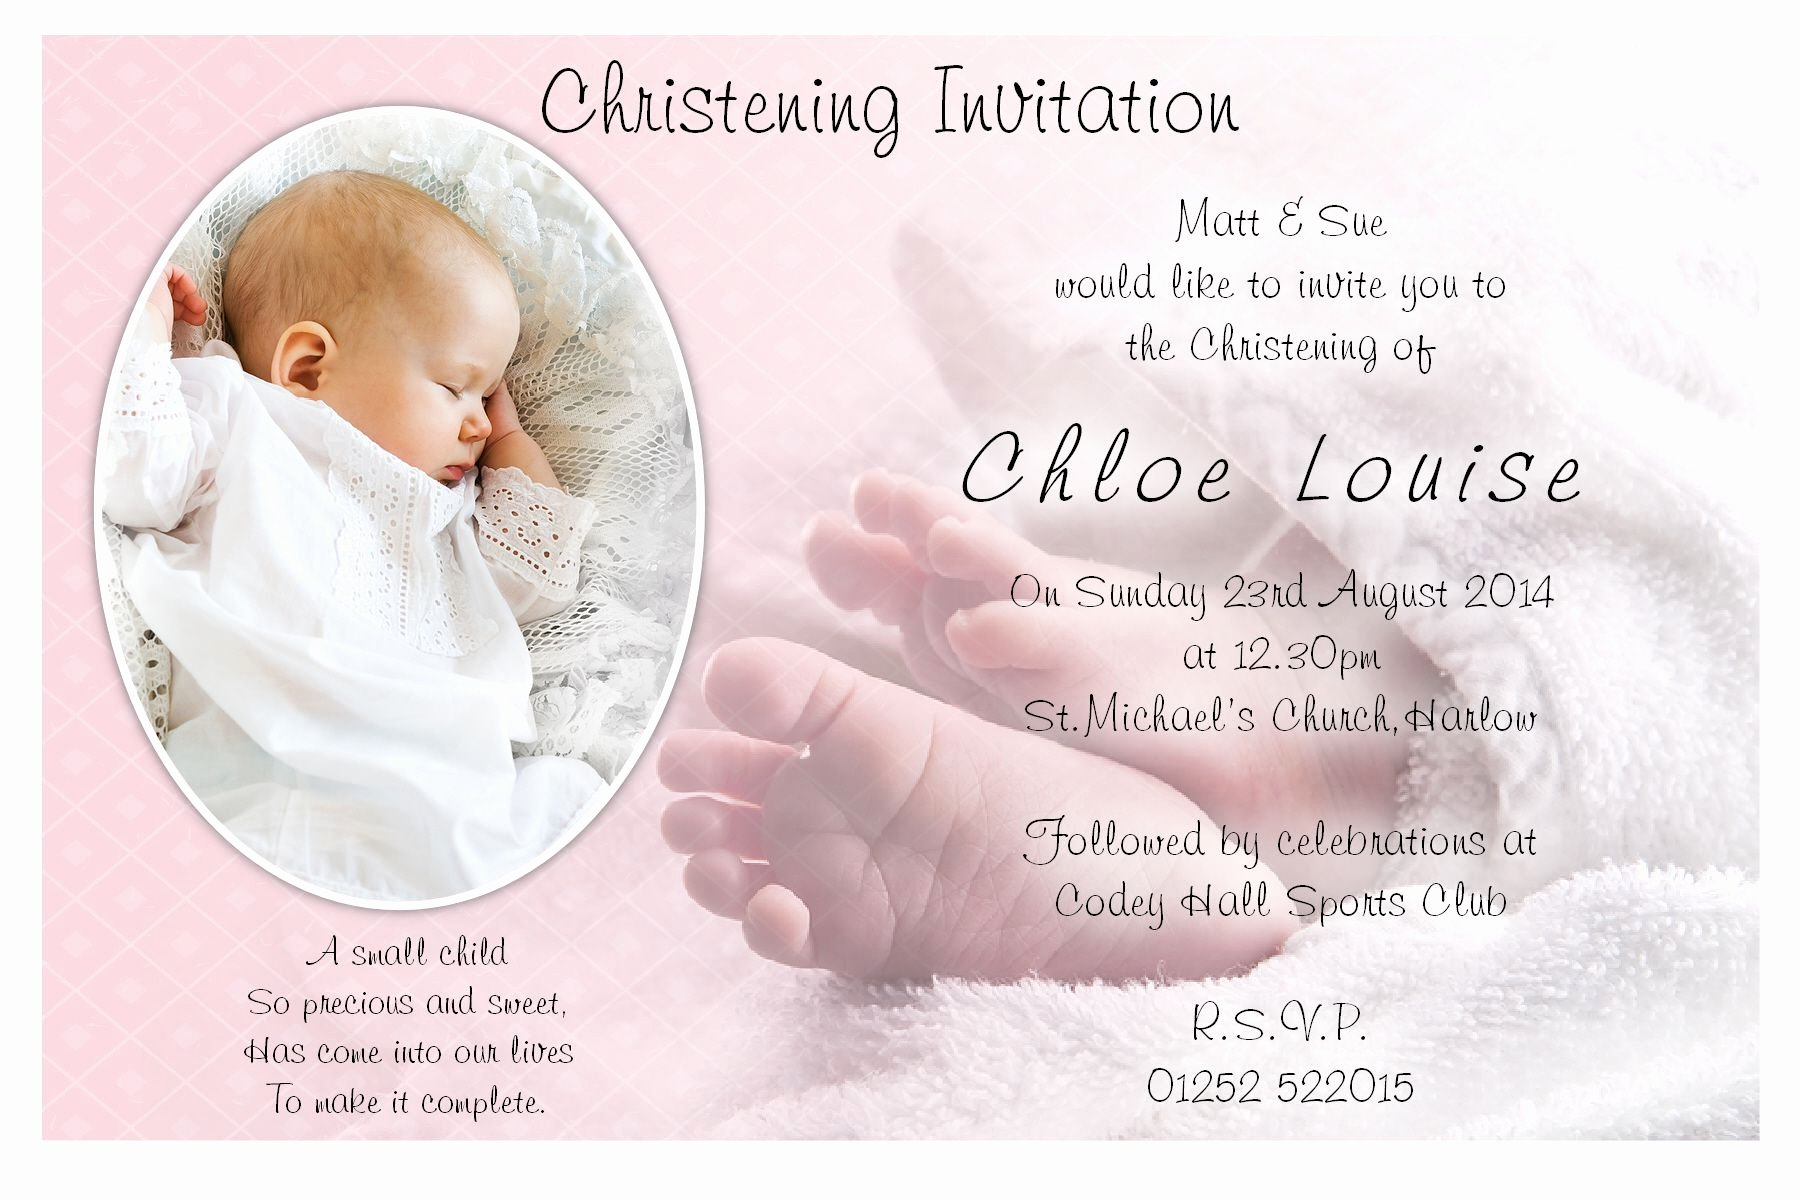 Baptism Invitation Template Free Download Luxury Baptism Invitation Template Baptism Invitation Template